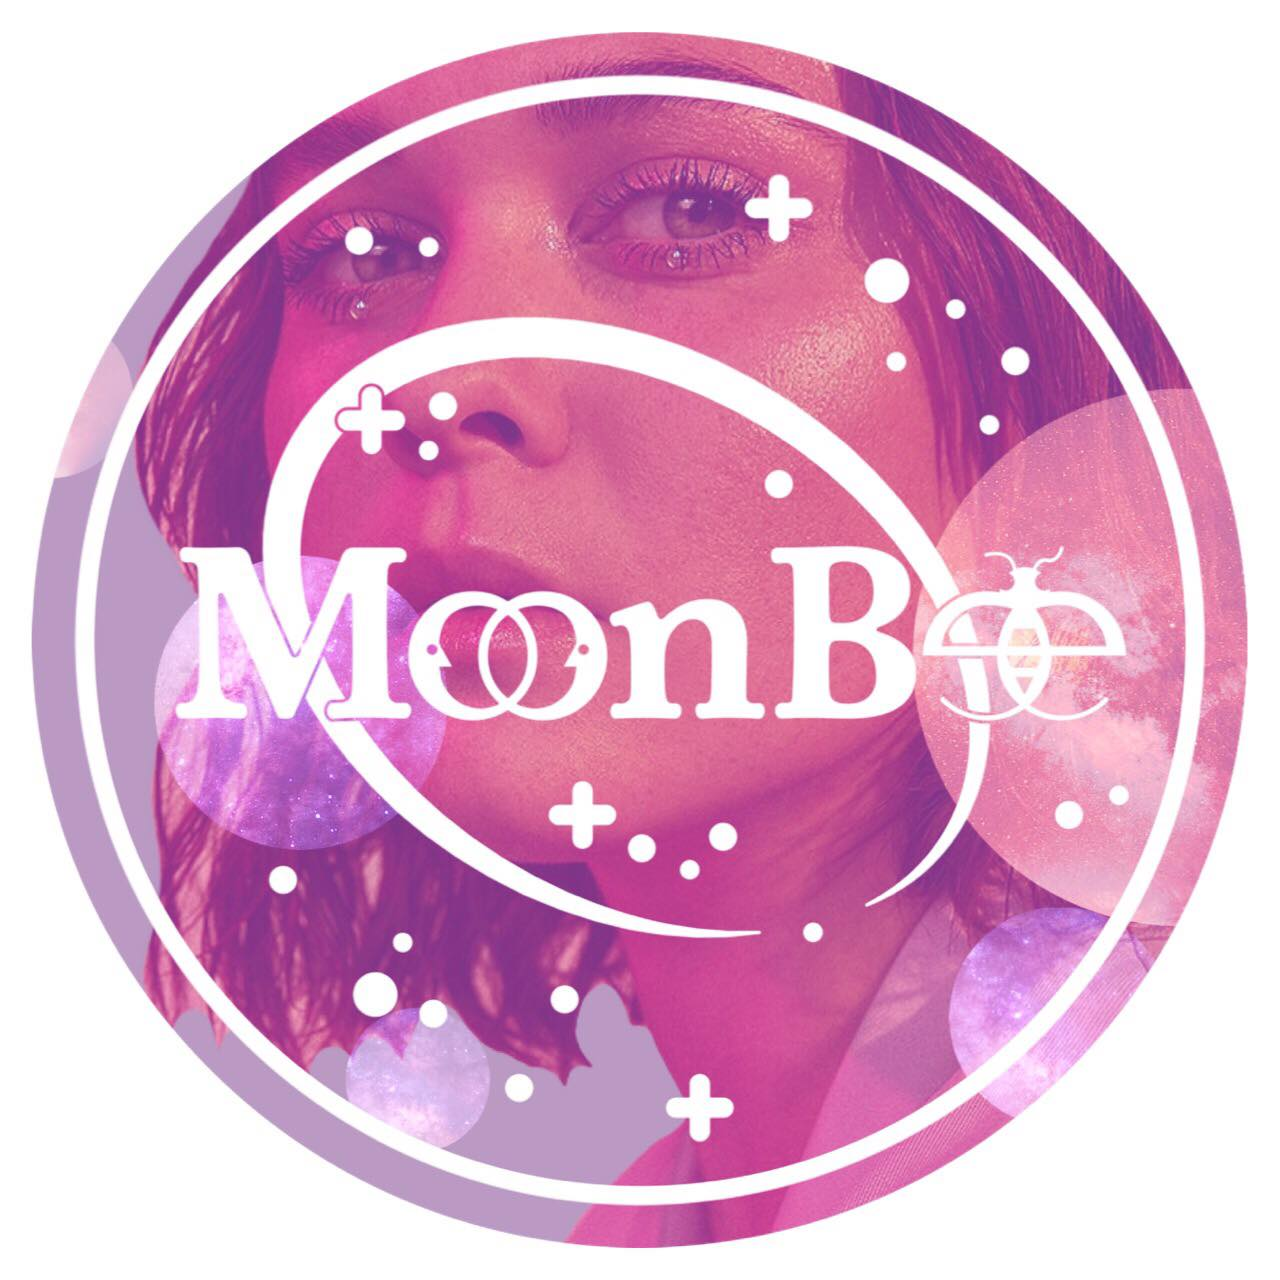 MoonBee - TIME: 13:30STAGE: KLUBSCENENVIEW PROGRAM